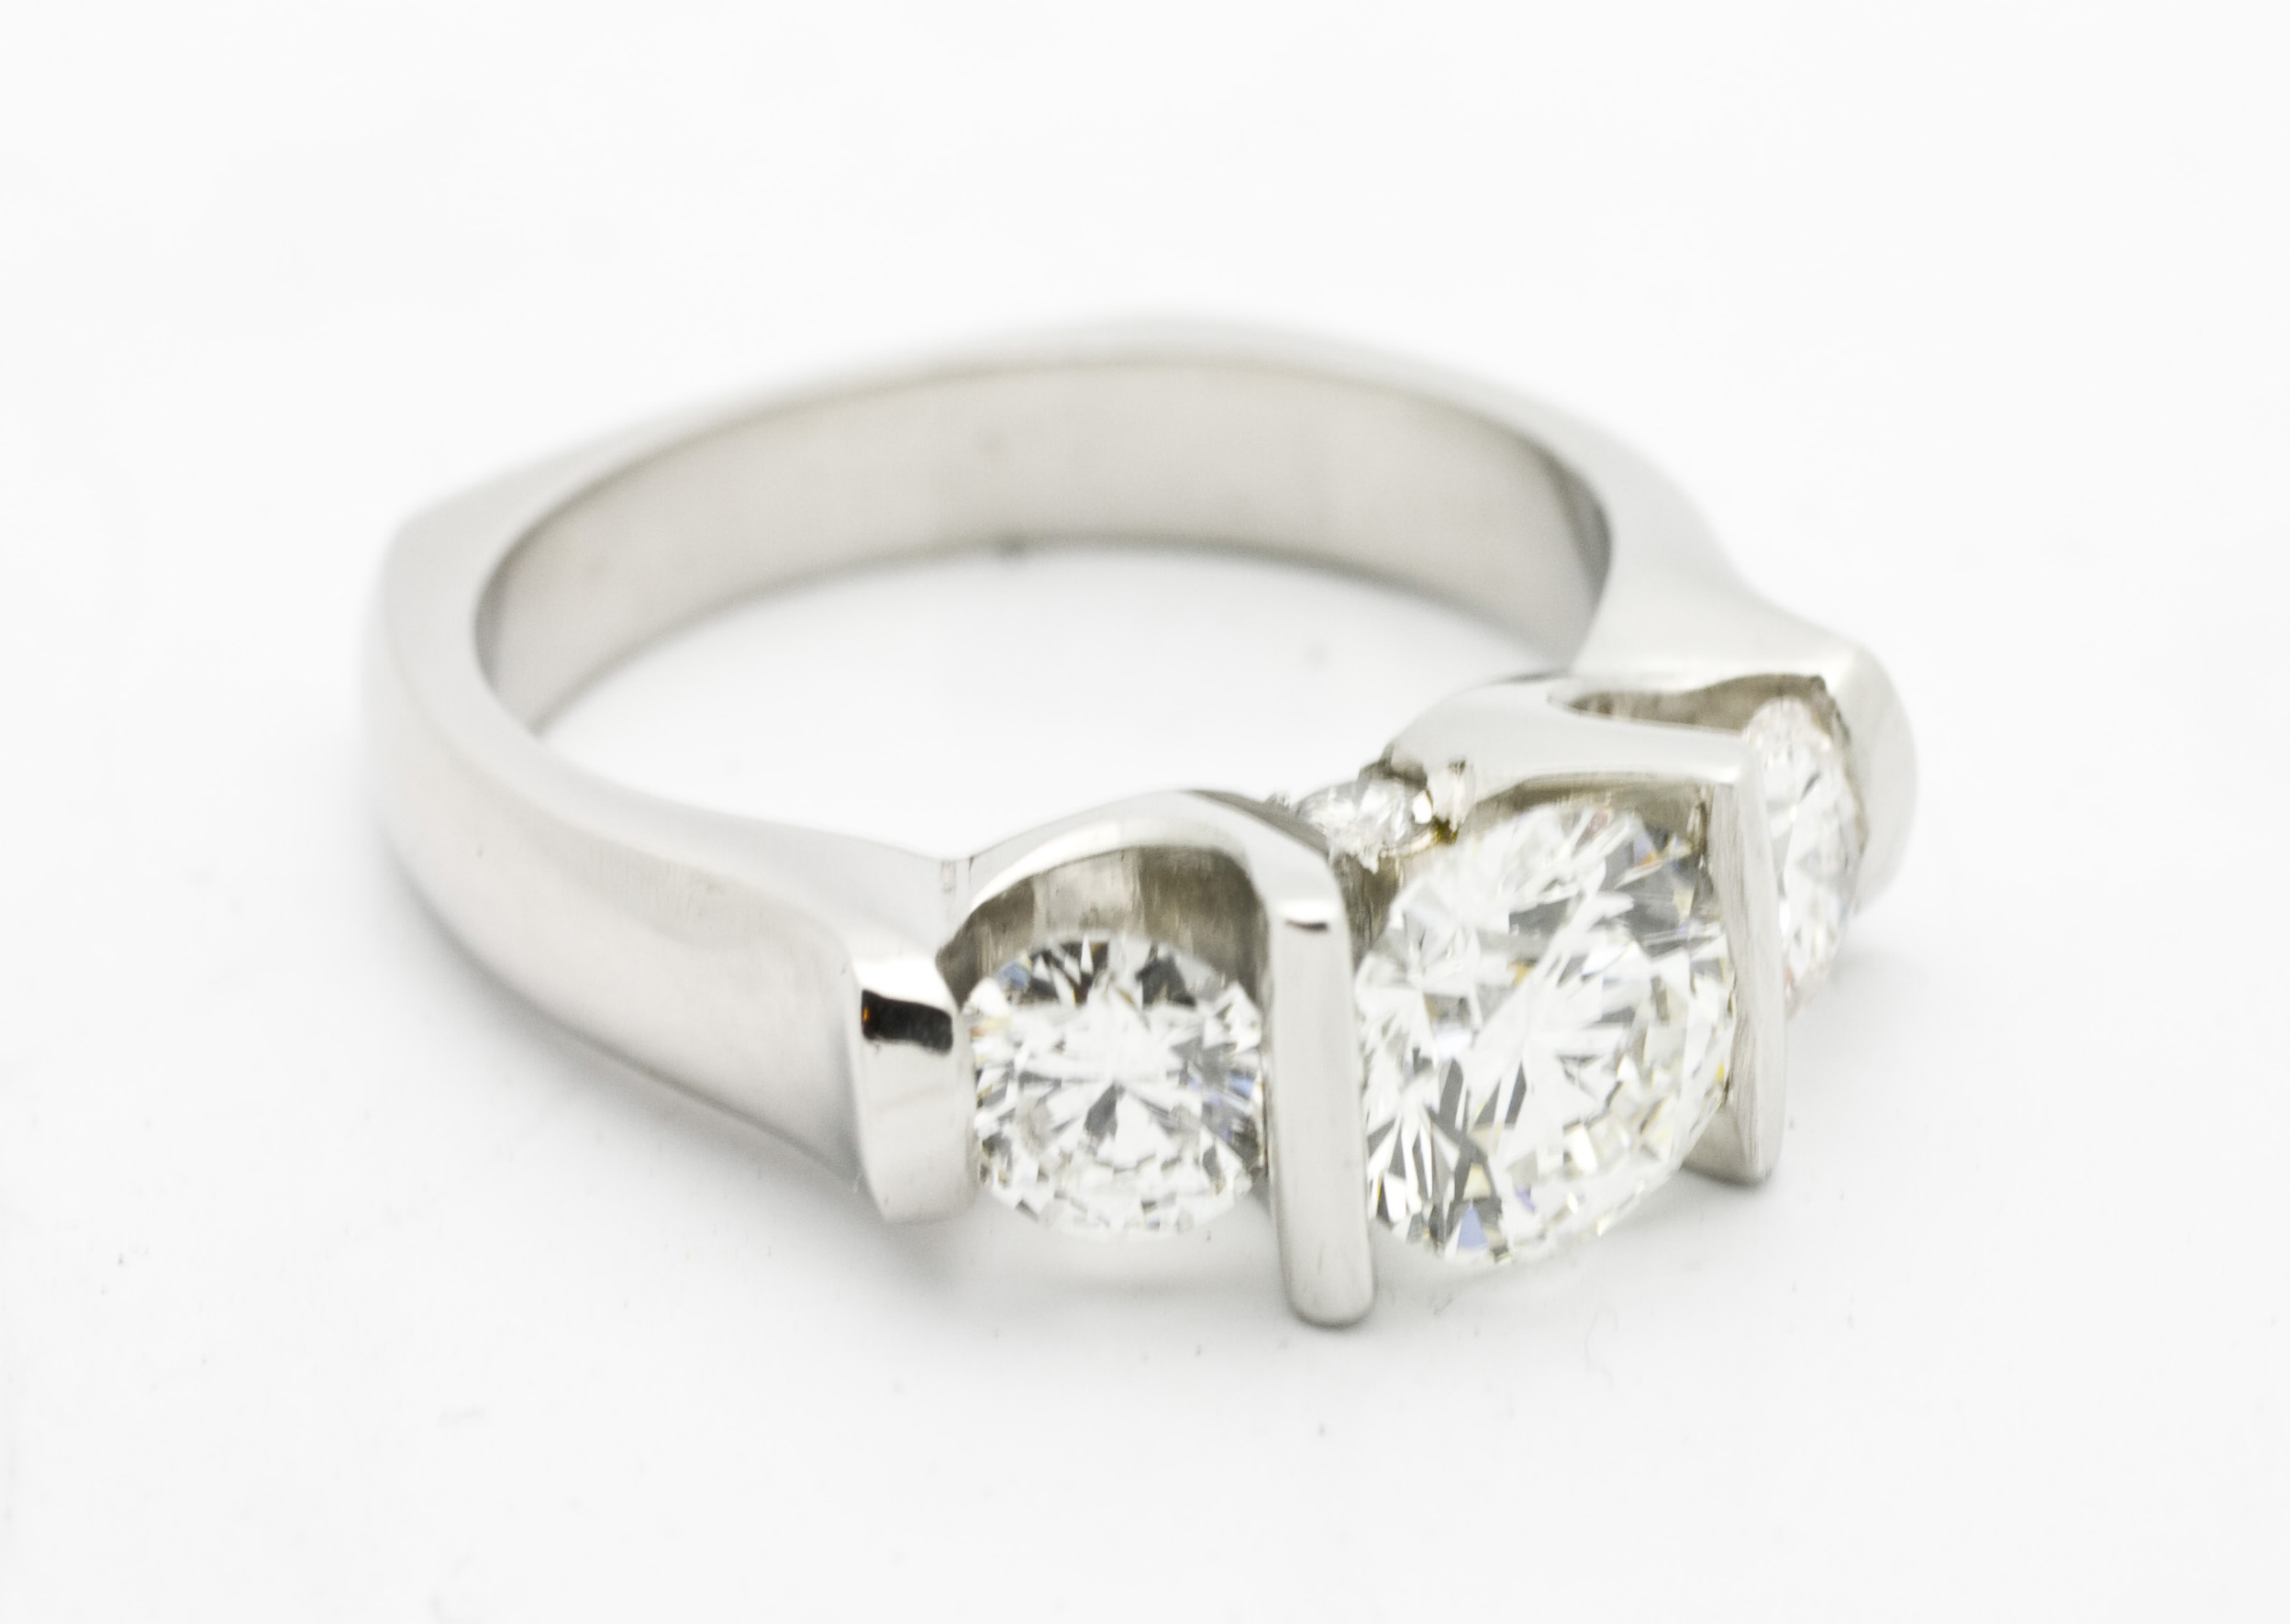 Three stone diamond ring set in 18kt white gold 0.90ct diamond center stone, 0.35tcw diamond side stones.  Starting at $7800 for this stone size  Can be customizable with any stone, size, metal etc.